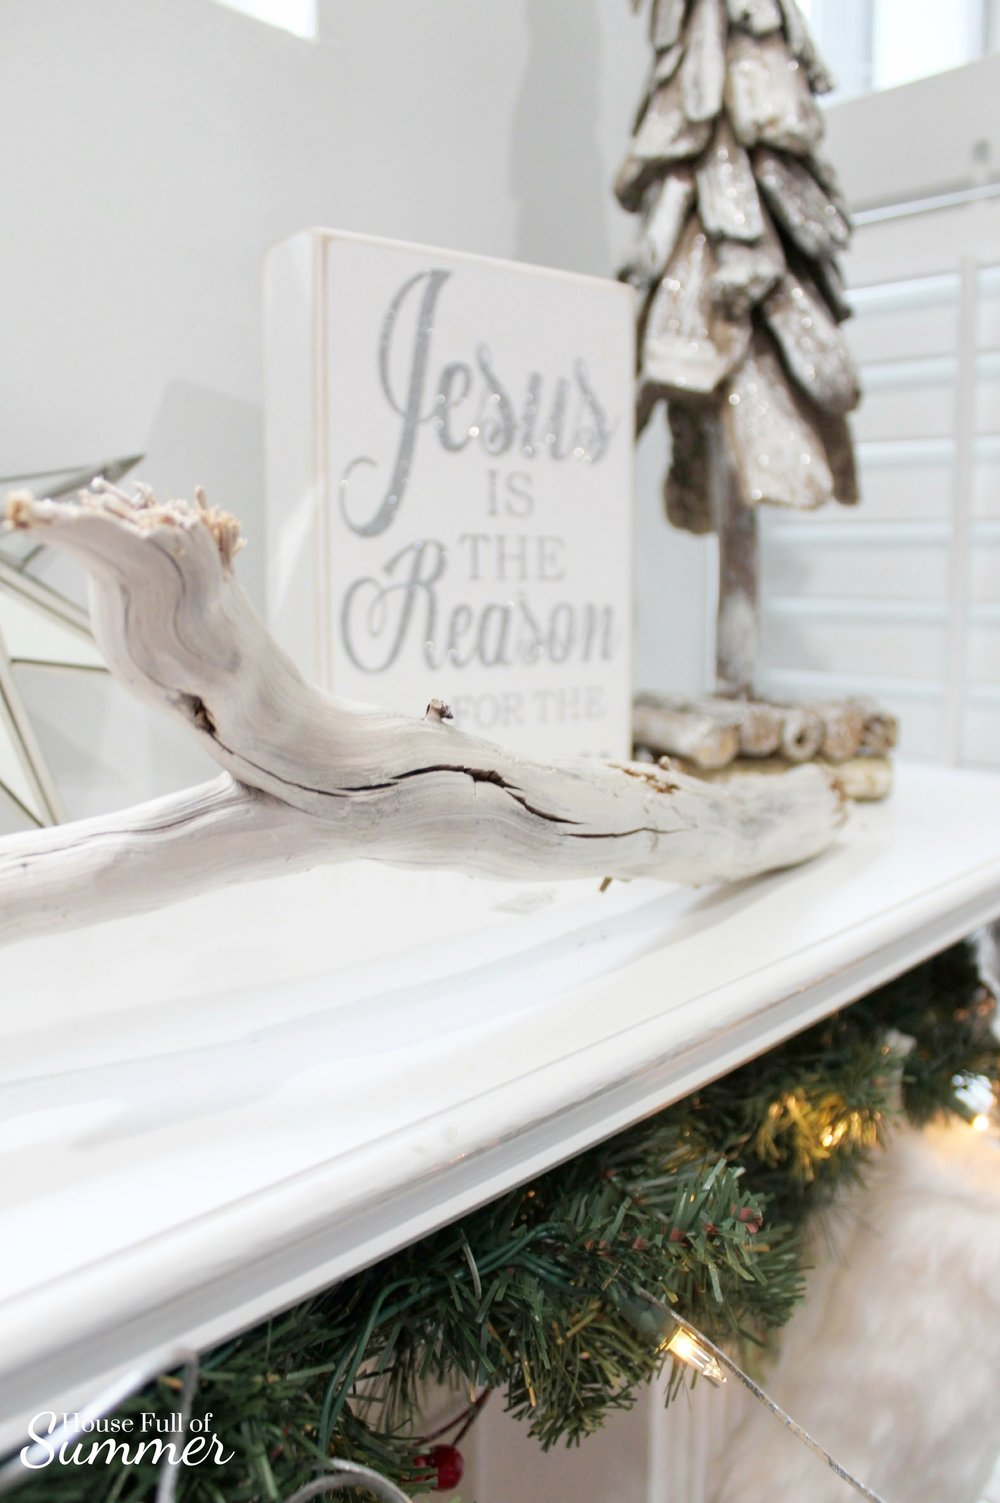 Classy Christmas Home Tour {Part Two} | House Full of Summer blog - mantel decor, christmas mantel ideas, coastal christmas mantel, silver and gold coastal decor, windows over mantel